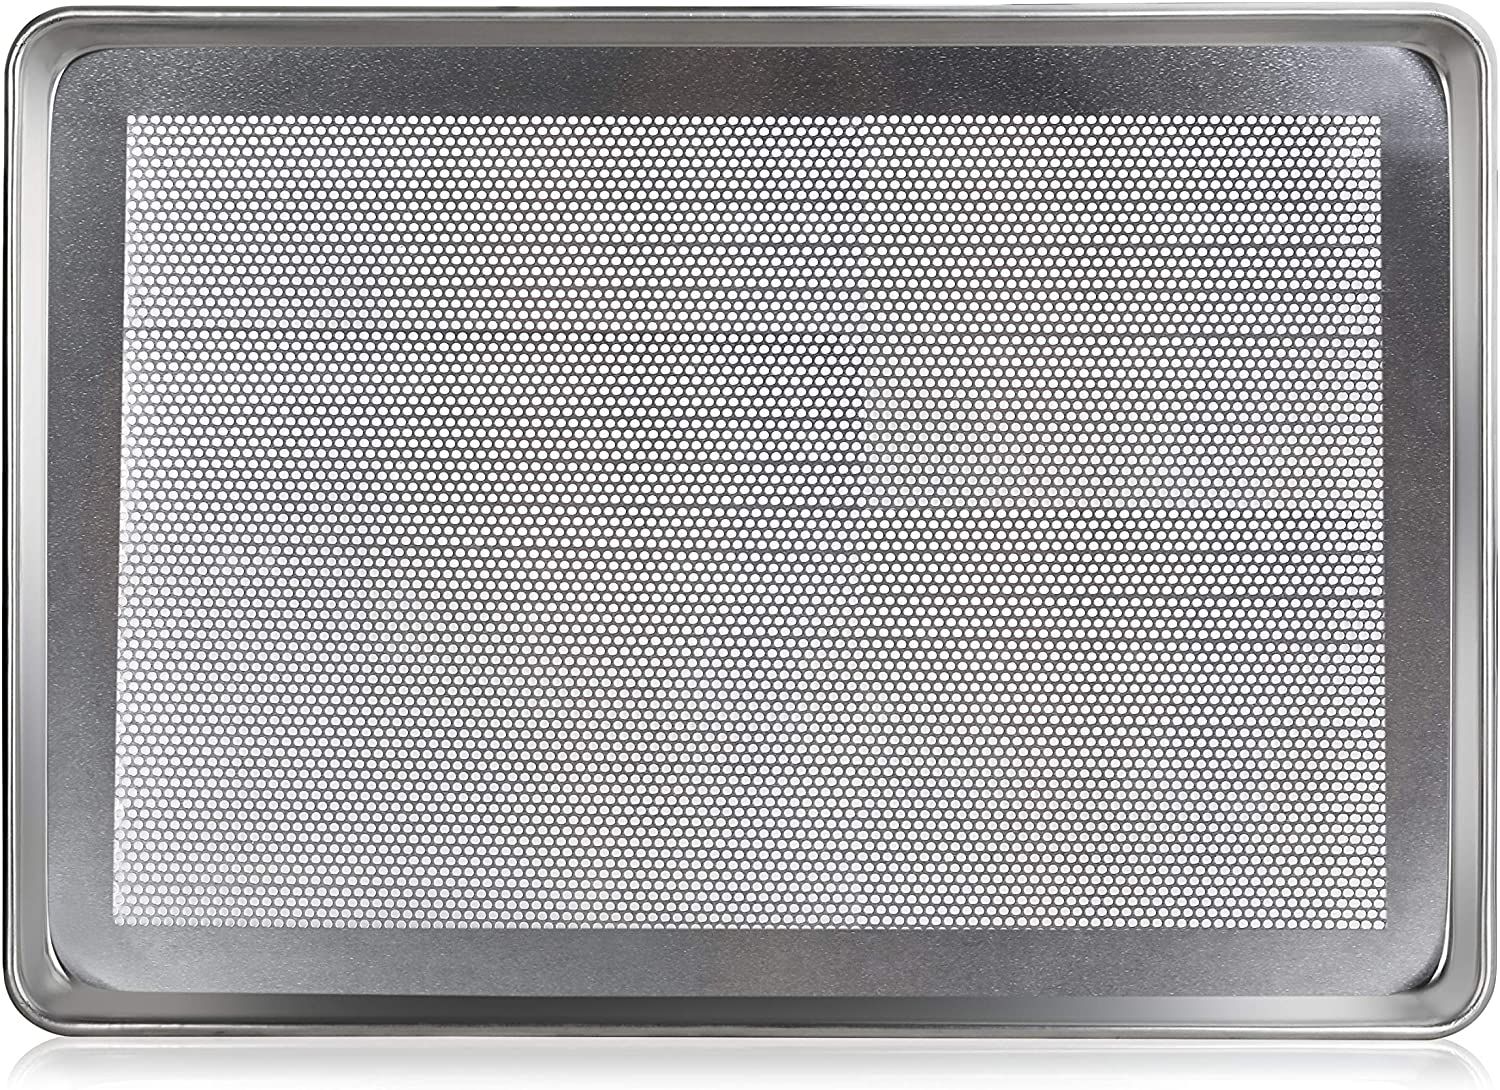 New Star Foodservice 36787 Commercial 18-Gauge Aluminum Sheet Pan, Perforated, 18 x 26 x 1 inch (Full Size) Pack of 12